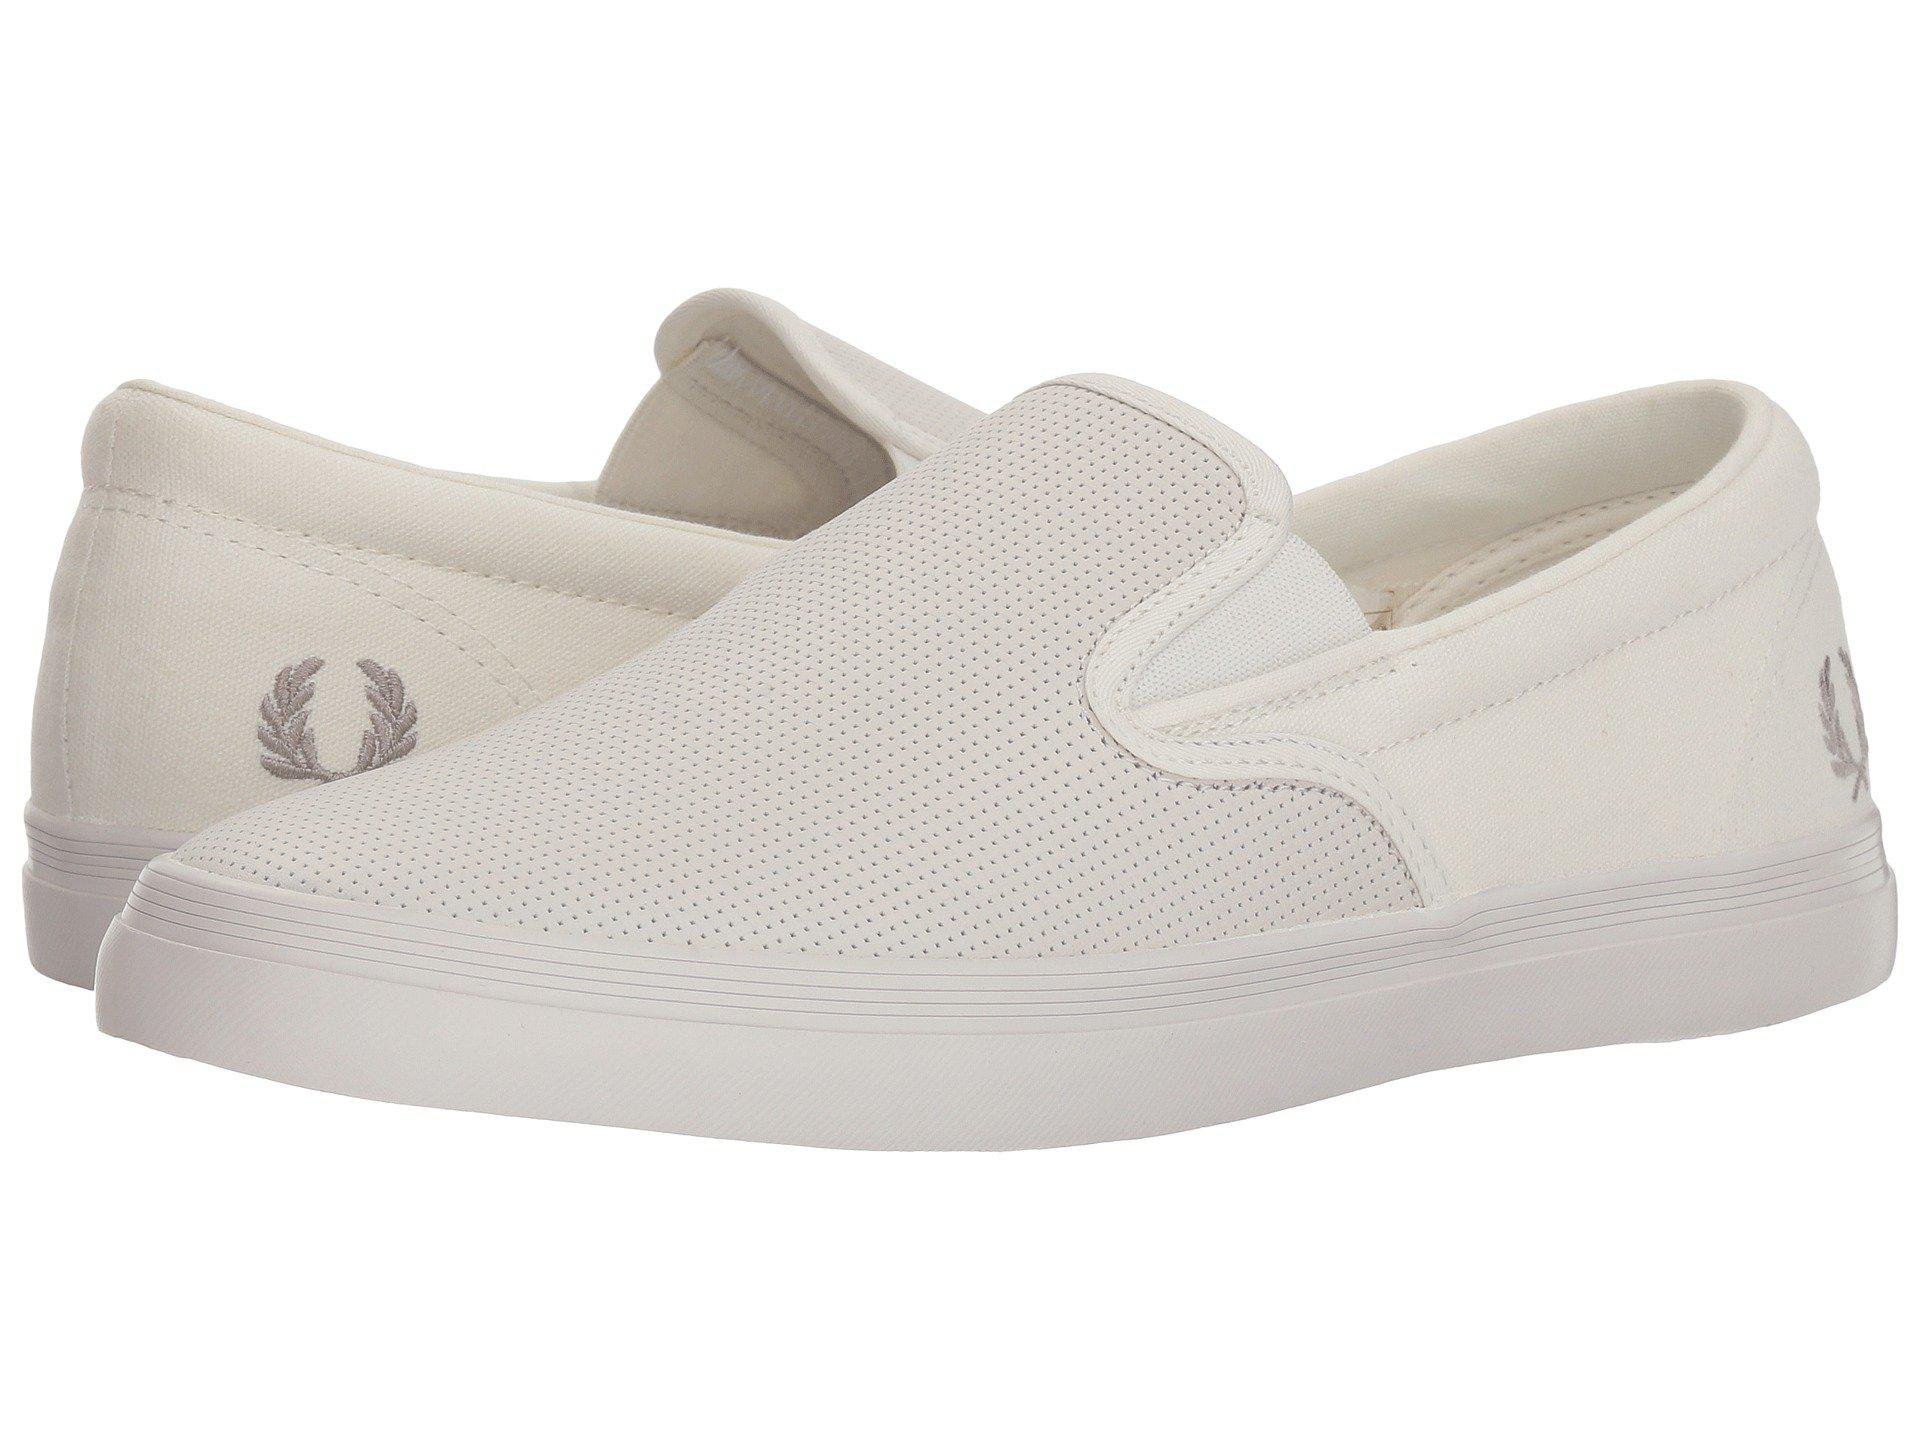 Fred PerryUnderspin Slip-On Checkerboard Leather/Canvas f6NKBtElig